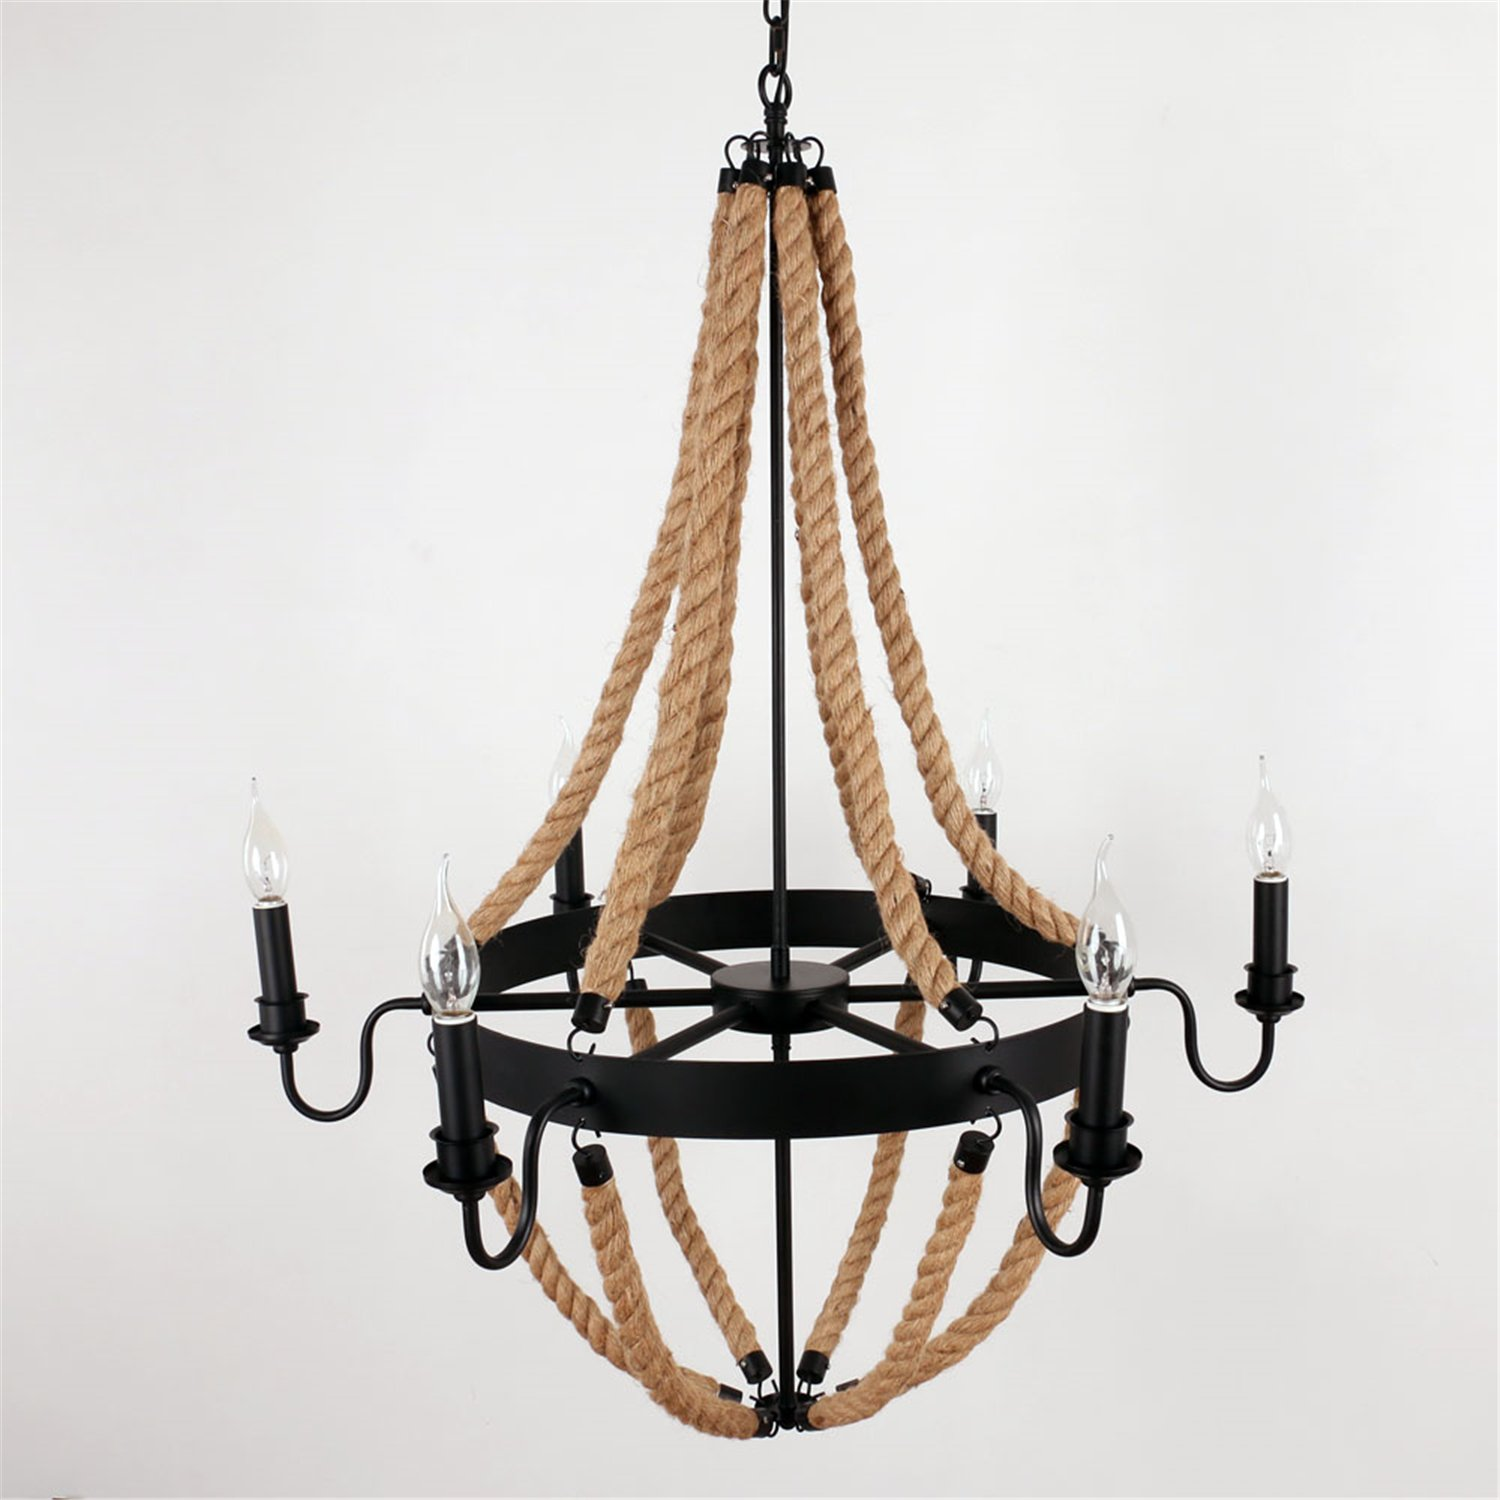 Unitary brand antique metal flaxen and black hemp rope wheel candle unitary brand antique metal flaxen and black hemp rope wheel candle chandelier with 6 e12 bulb sockets 240w painted finish amazon arubaitofo Image collections